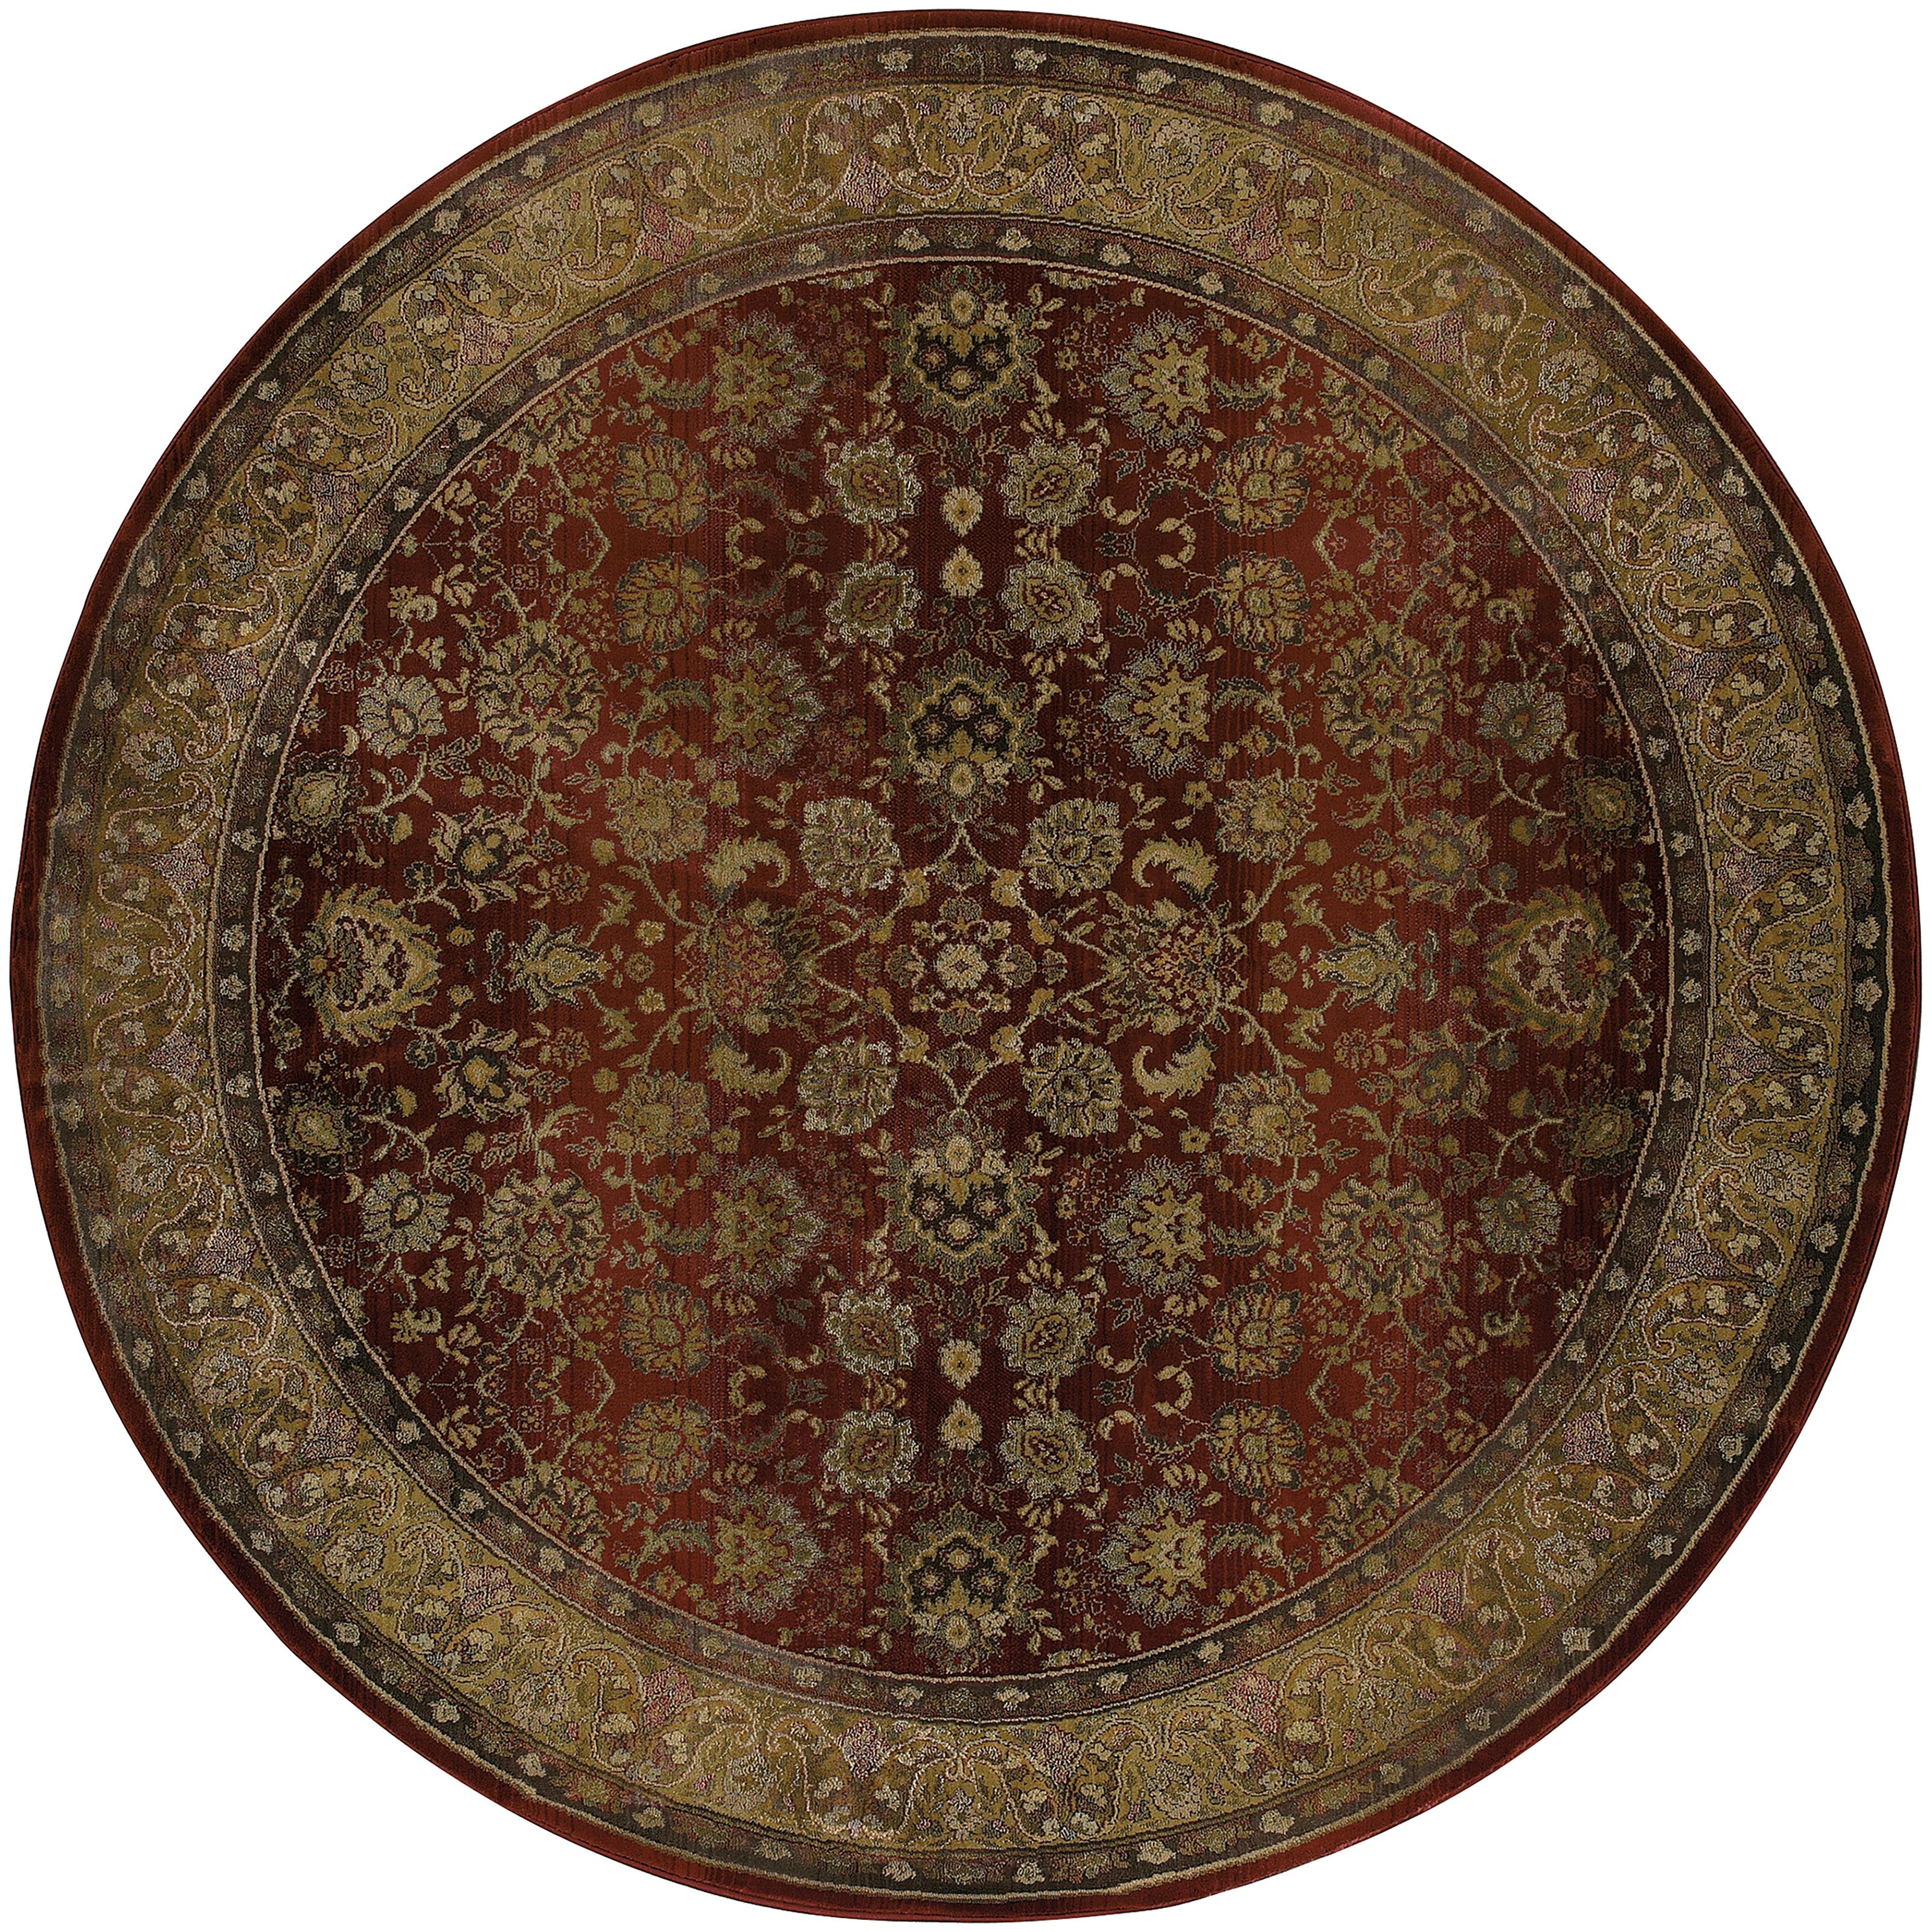 Generations 6' Rug by Oriental Weavers at Dunk & Bright Furniture